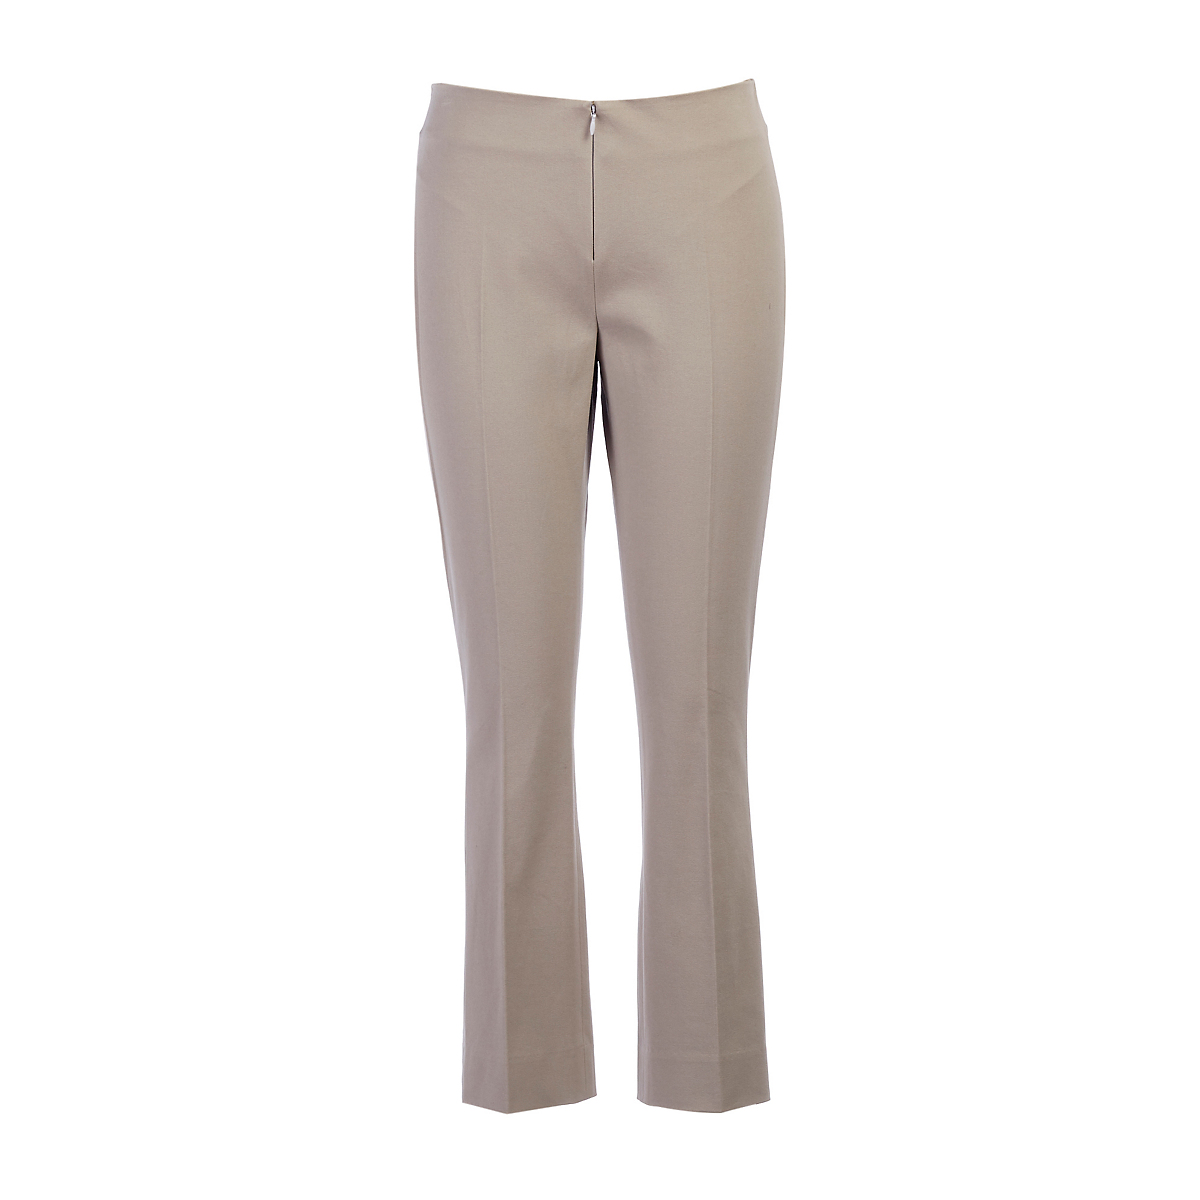 Peace of Cloth Kaylee Trousers